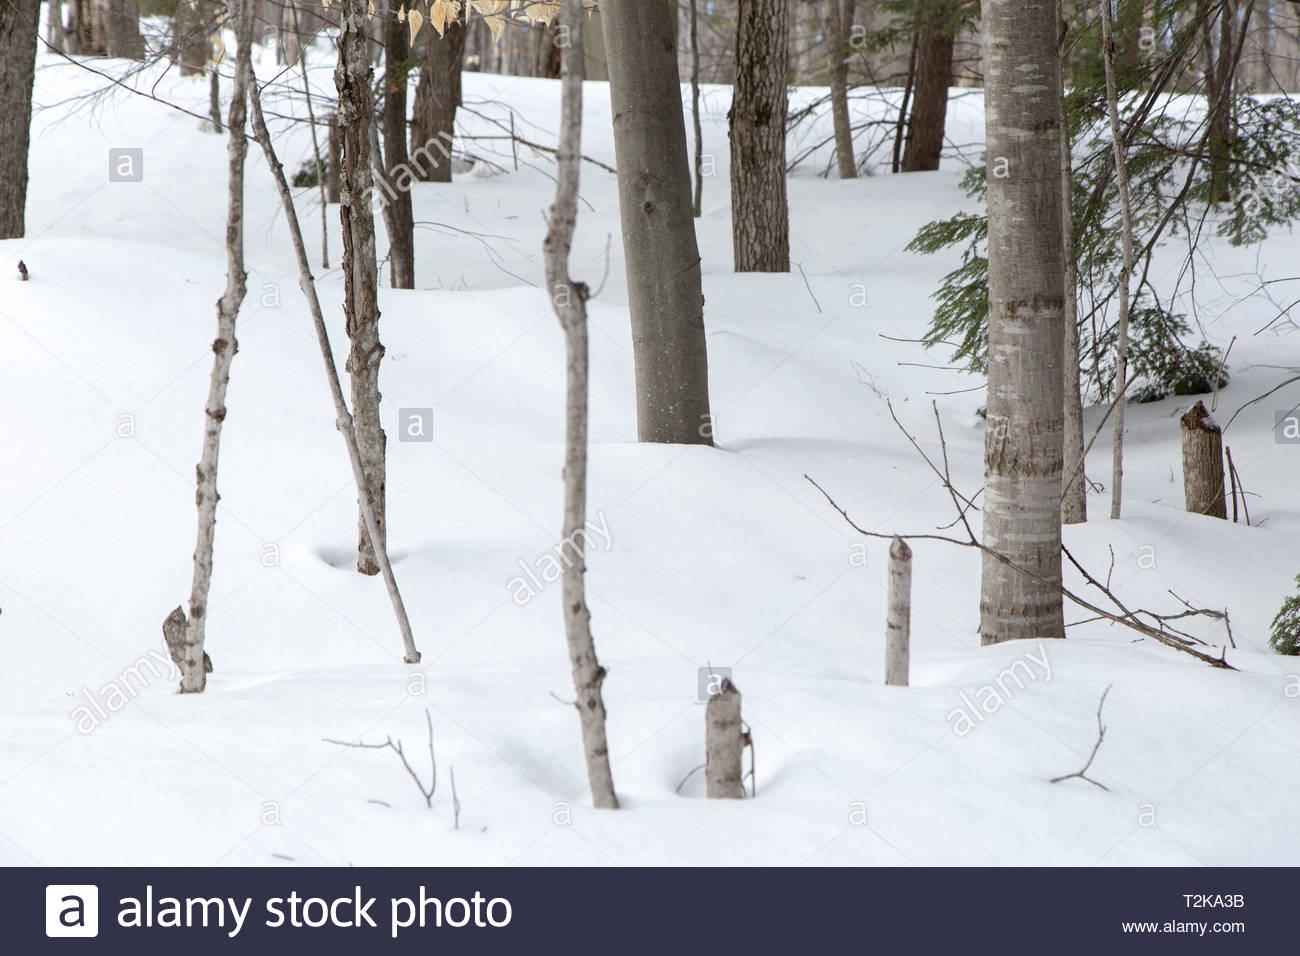 Forest surrounding a country lane in Seguin County, Muskoka, Ontario. - Stock Image